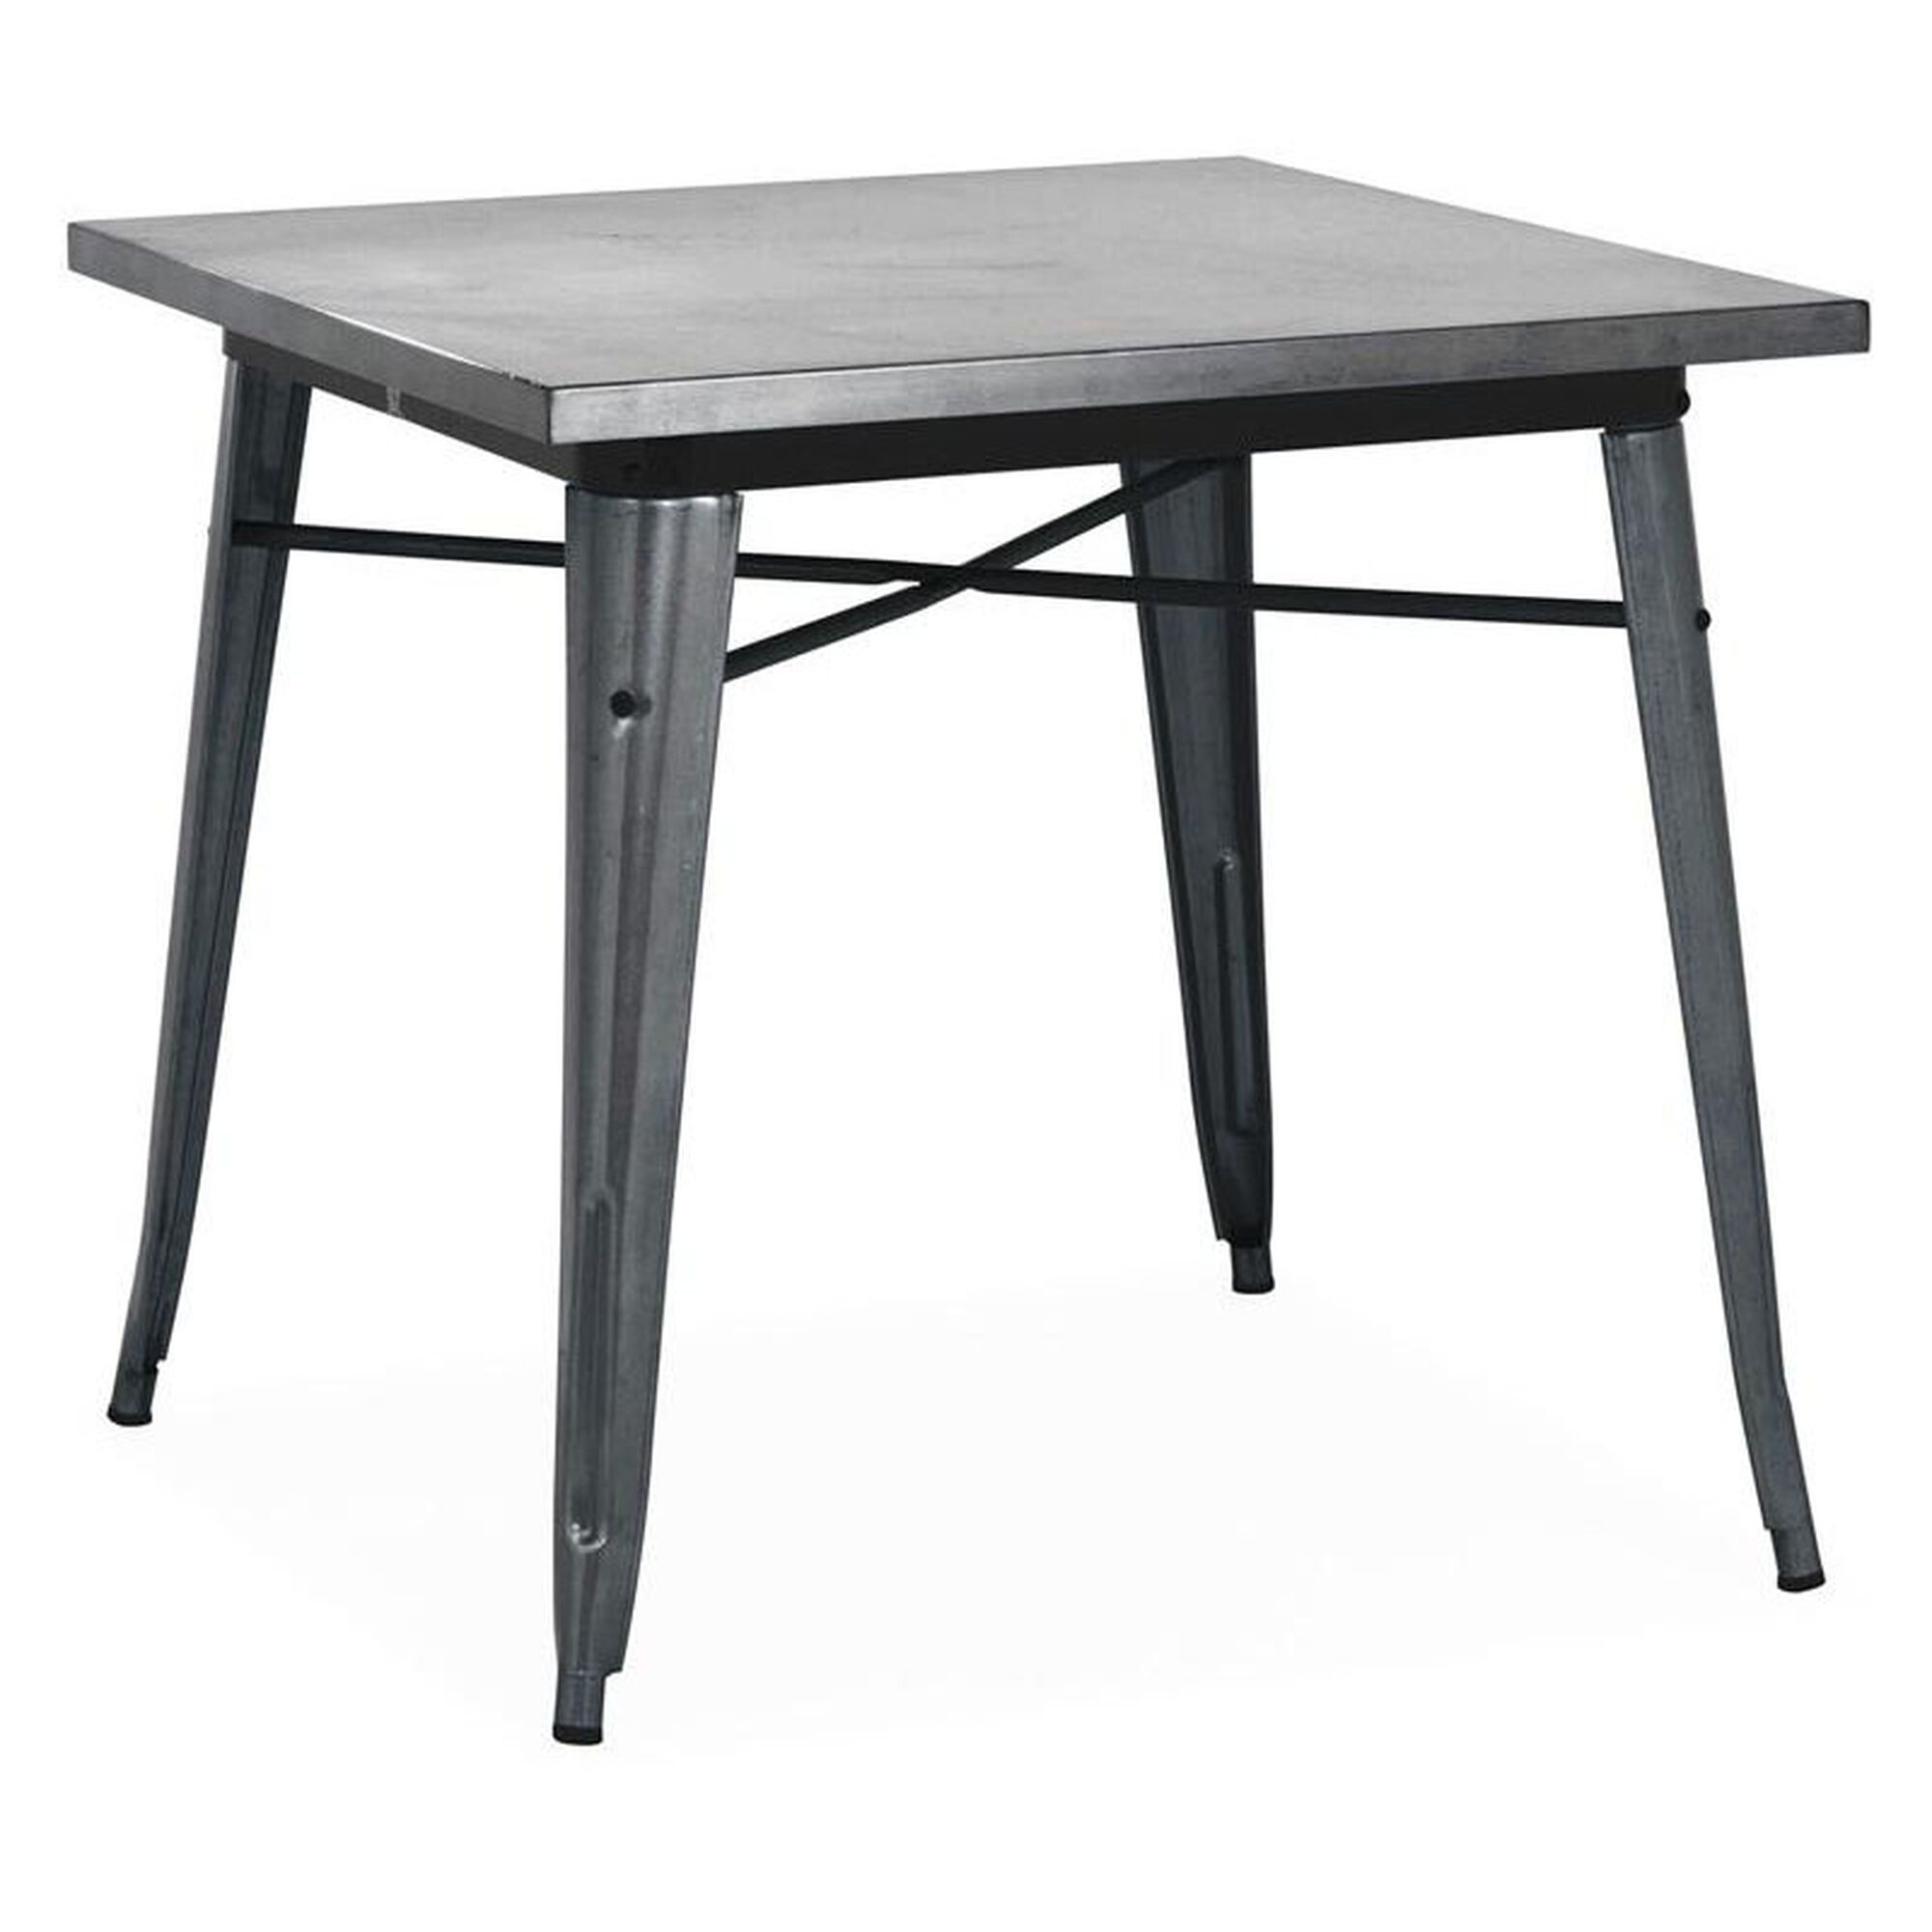 Dreux Dark Gunmetal Steel Frame Square Top Dining Table 30 H